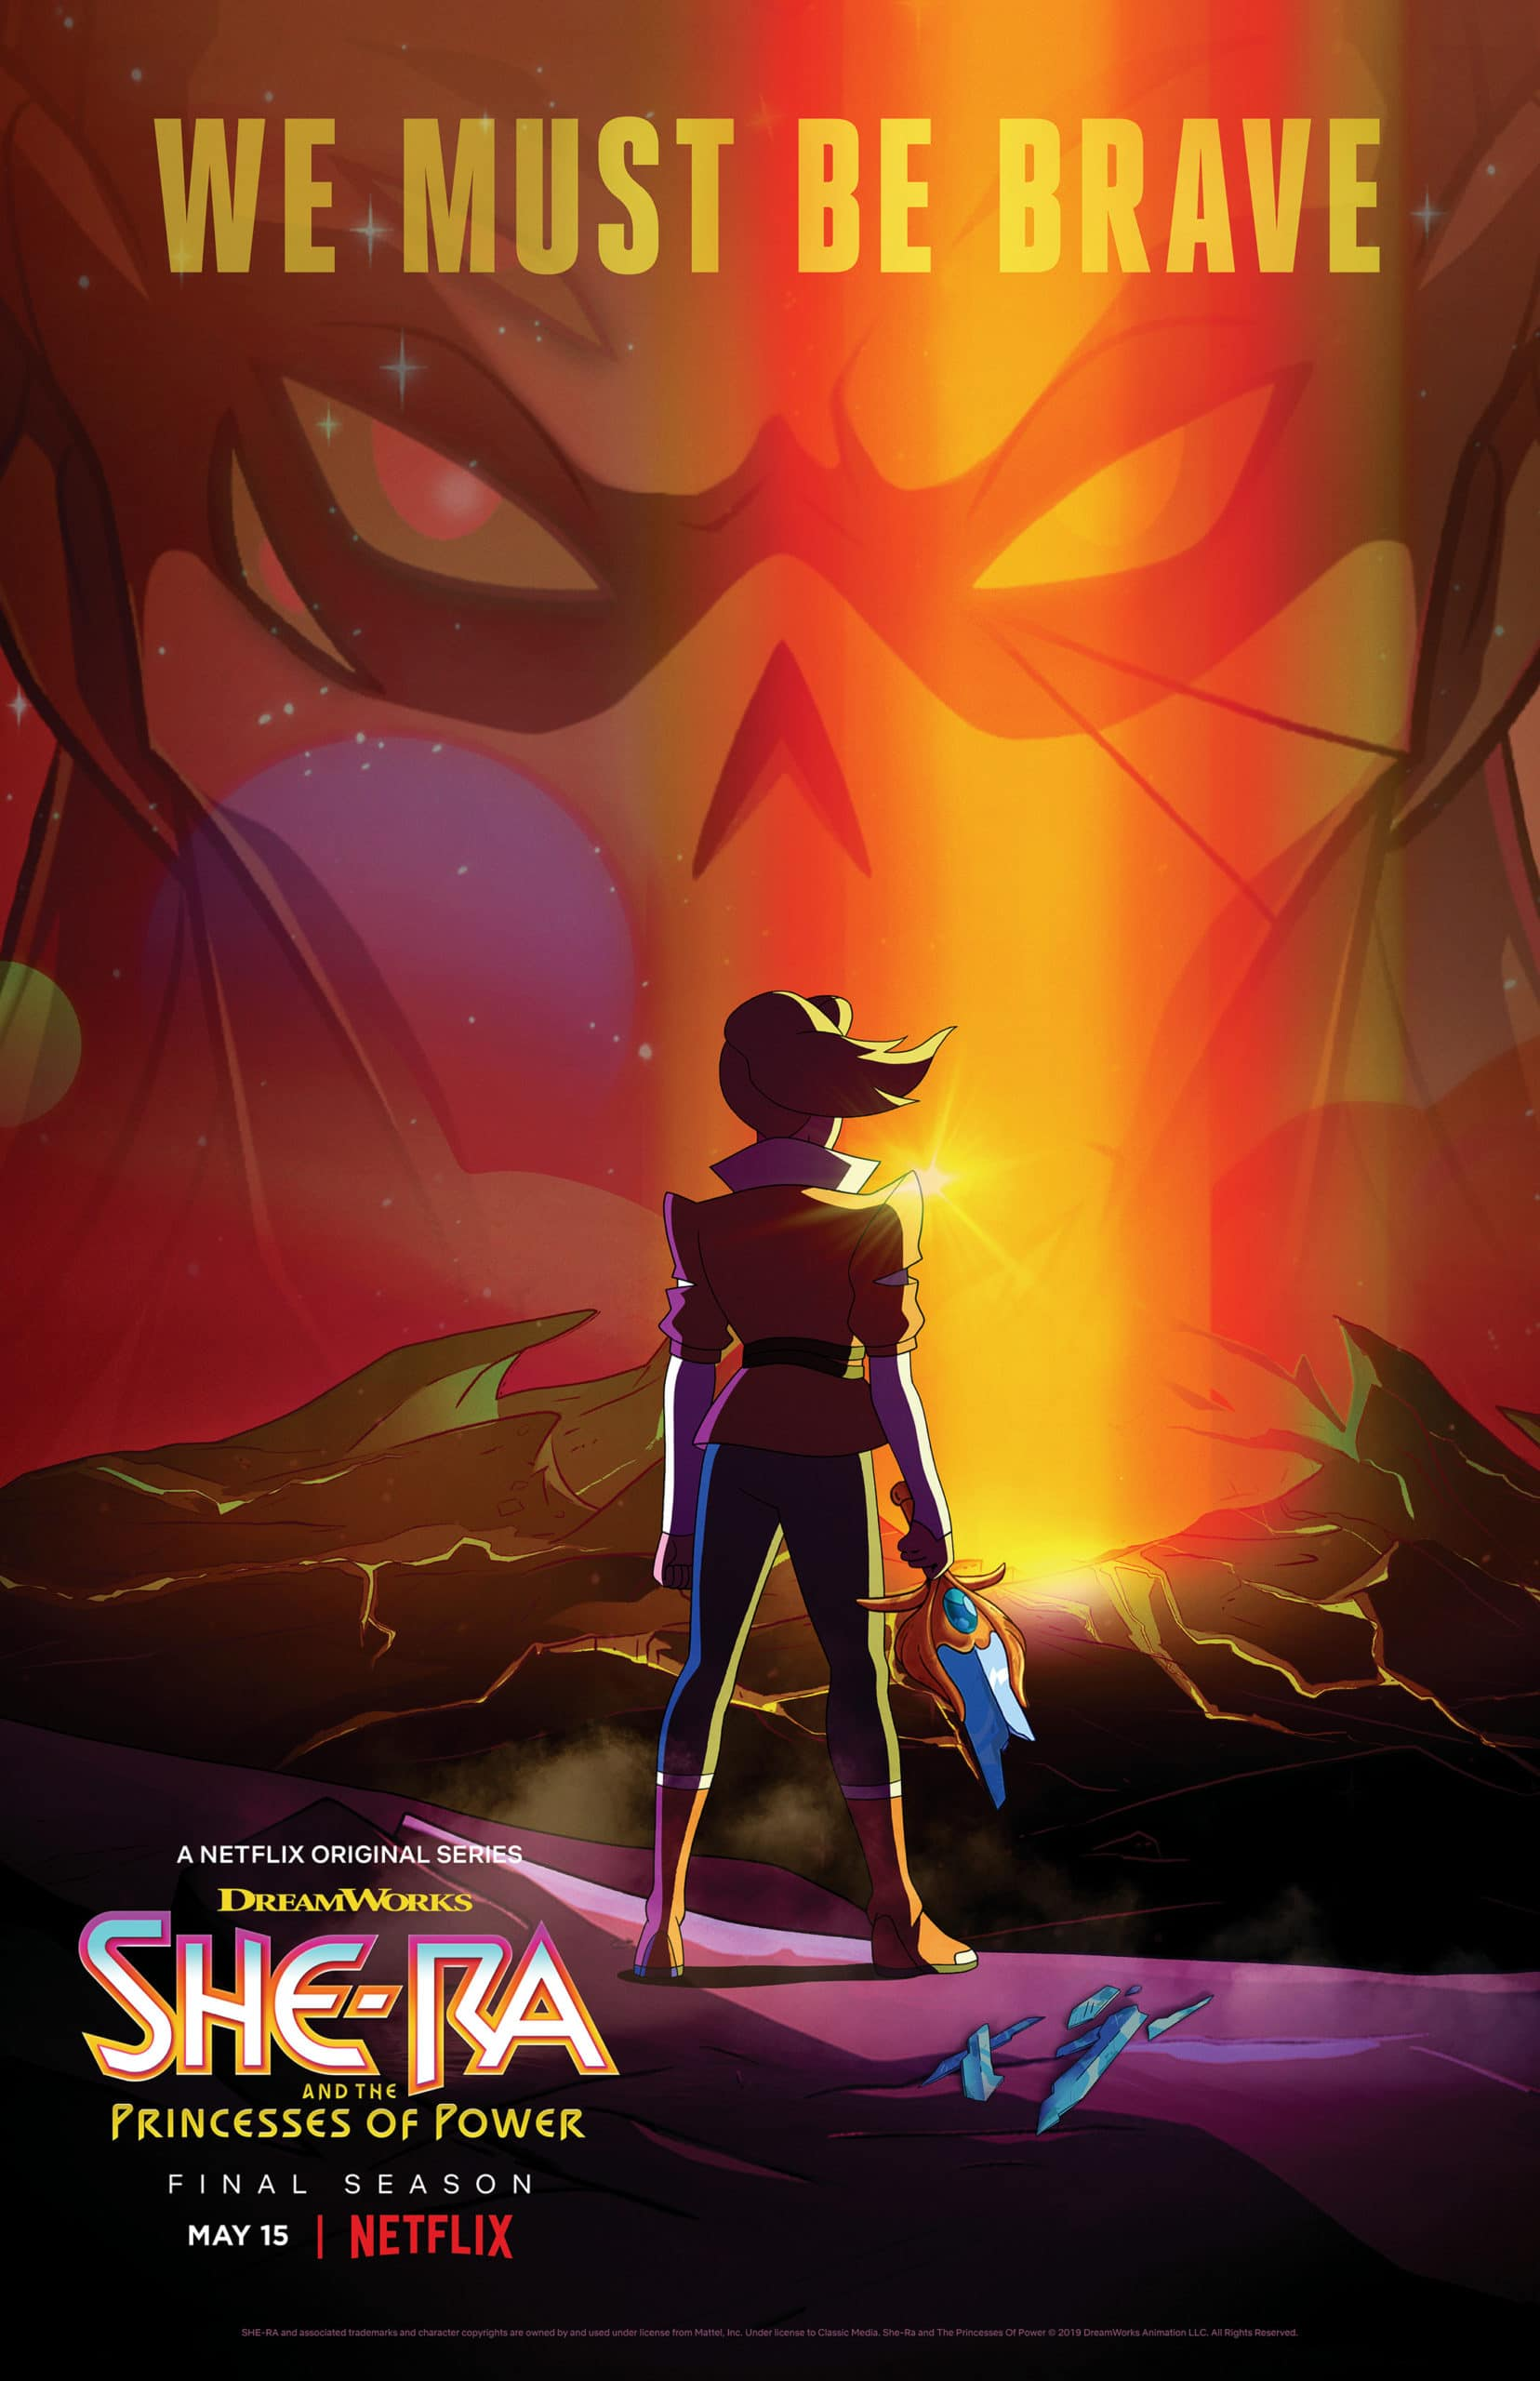 She-Ra and the Princesses of Power Final Season Teaser Poster. In season 5, the ruthless Horde Prime has arrived and without the Sword of Protection and She-Ra, the Rebellion are facing their toughest challenge yet. Available on Netflix May 8th, 2020.